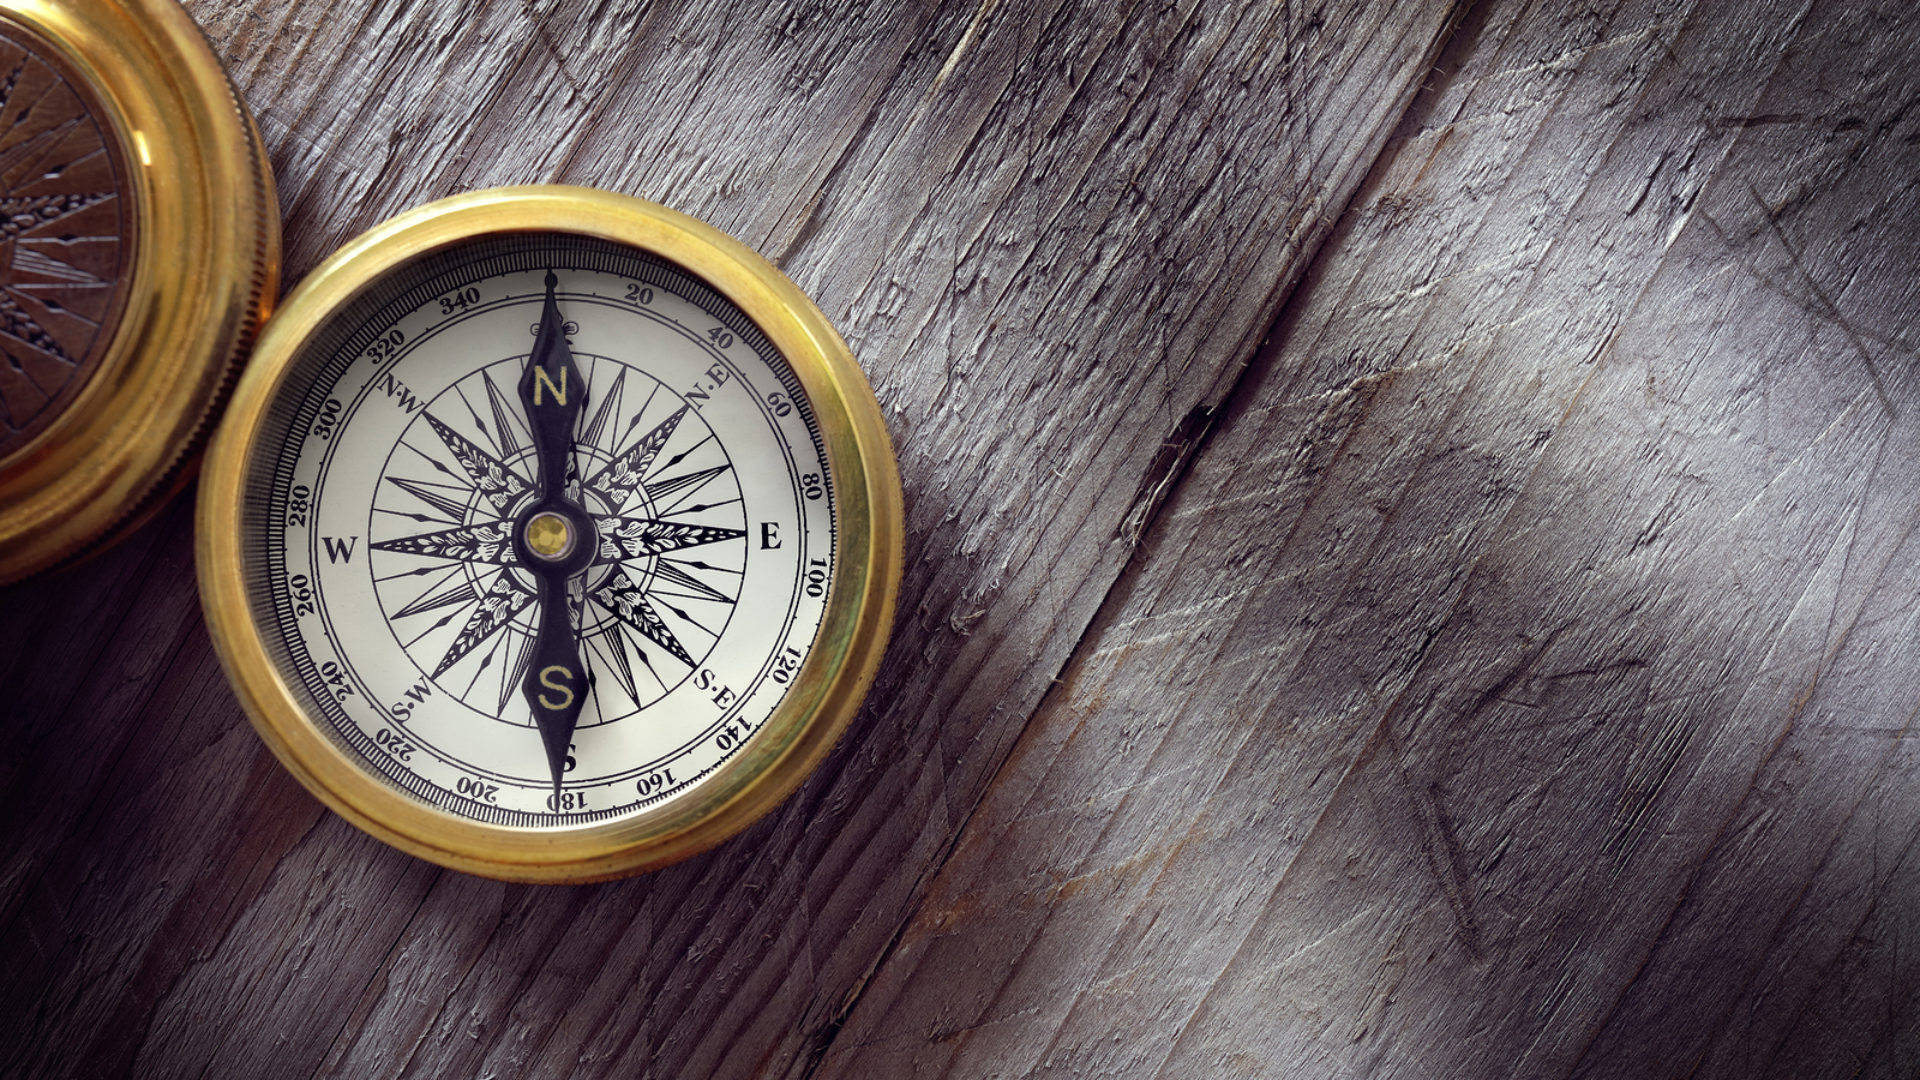 Heikens Human Capital